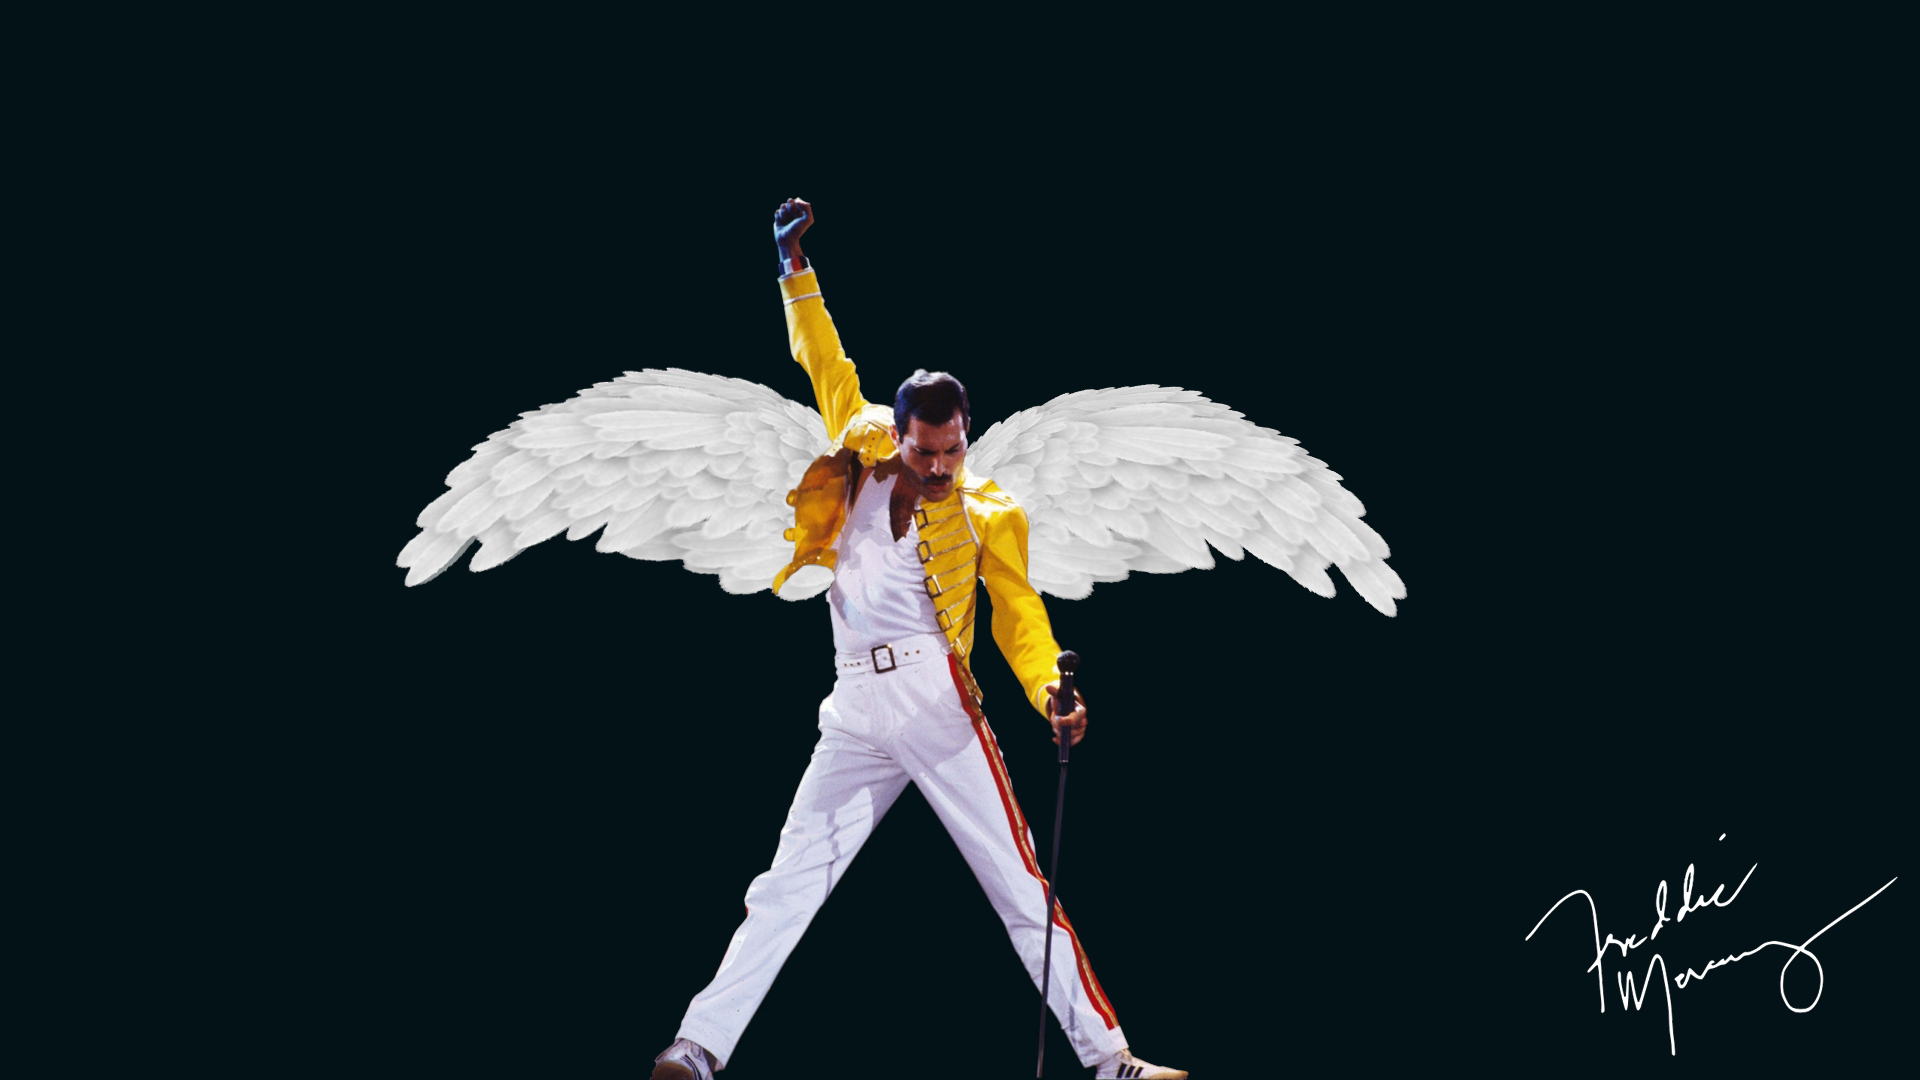 Freddie Mercury wallpaper | 1920x1080 | #62524